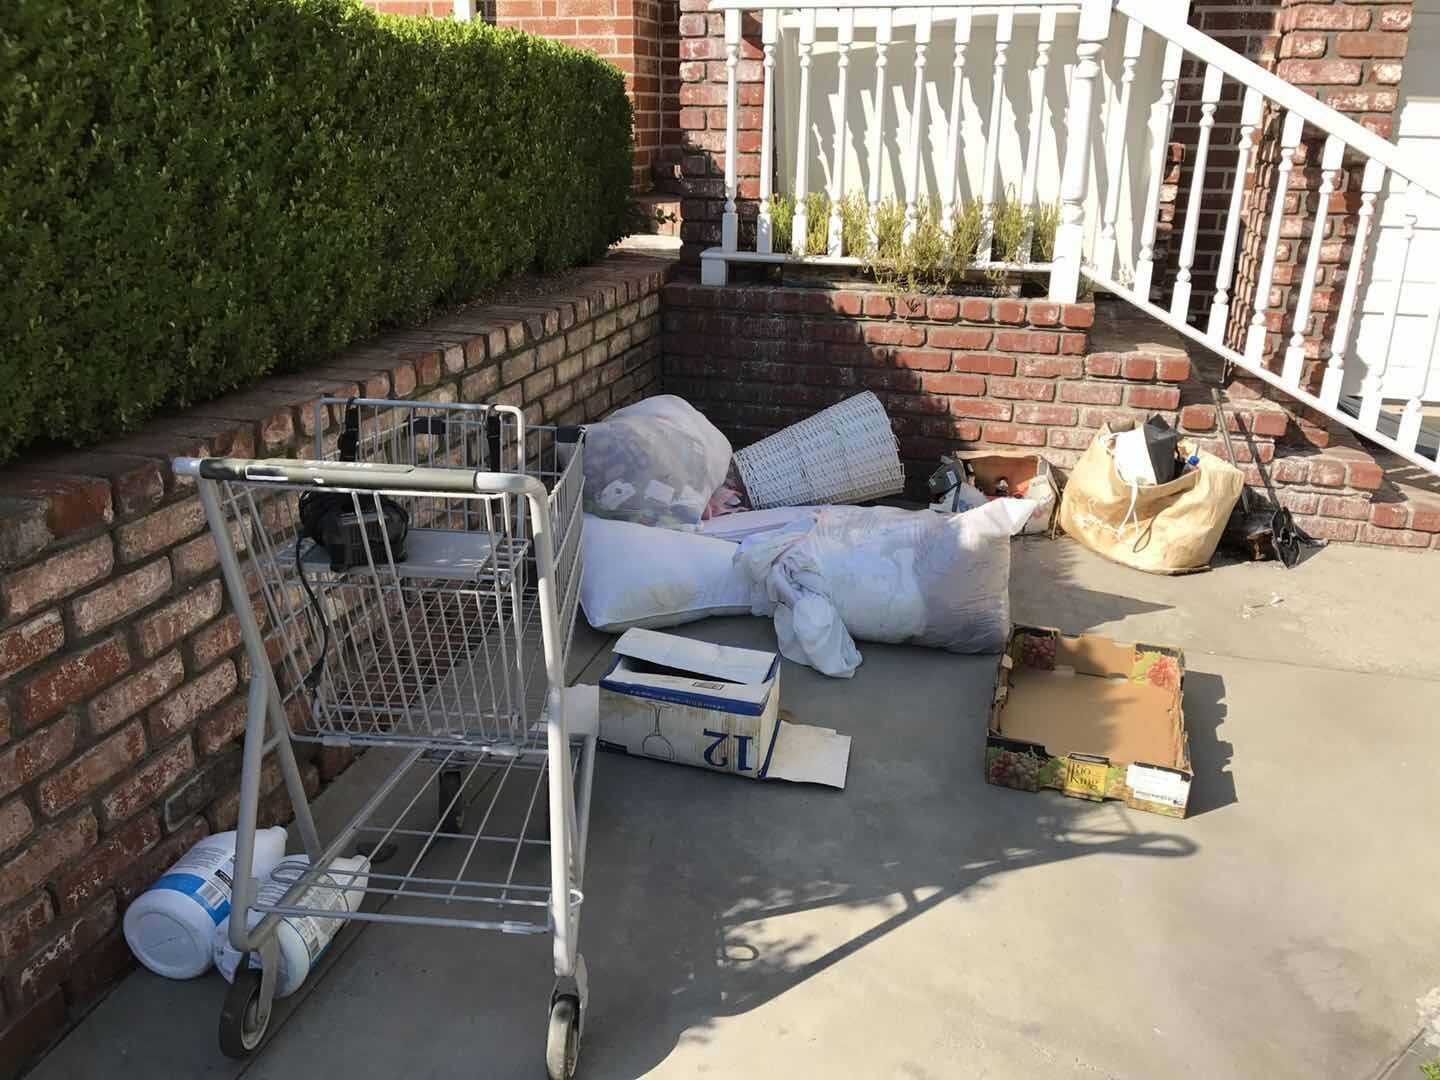 driveway-mess-from-bad-tenant-stolen-shopping-cart